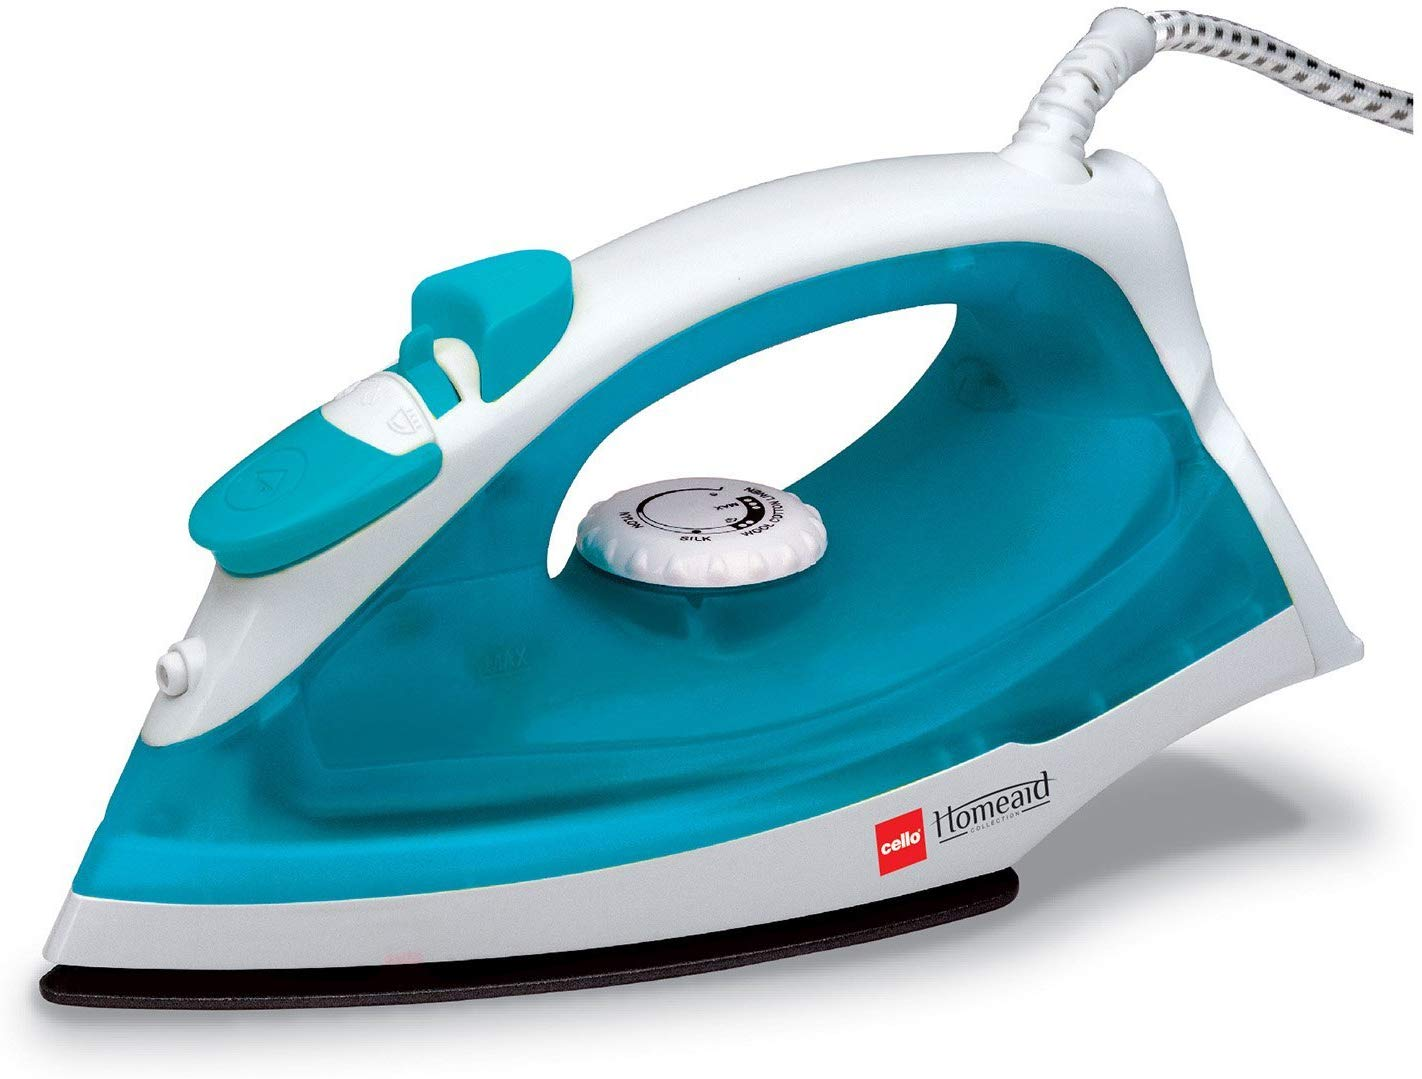 Cello Sty Steamy 200B 0.80 Kg 1250-Watt Steam Iron